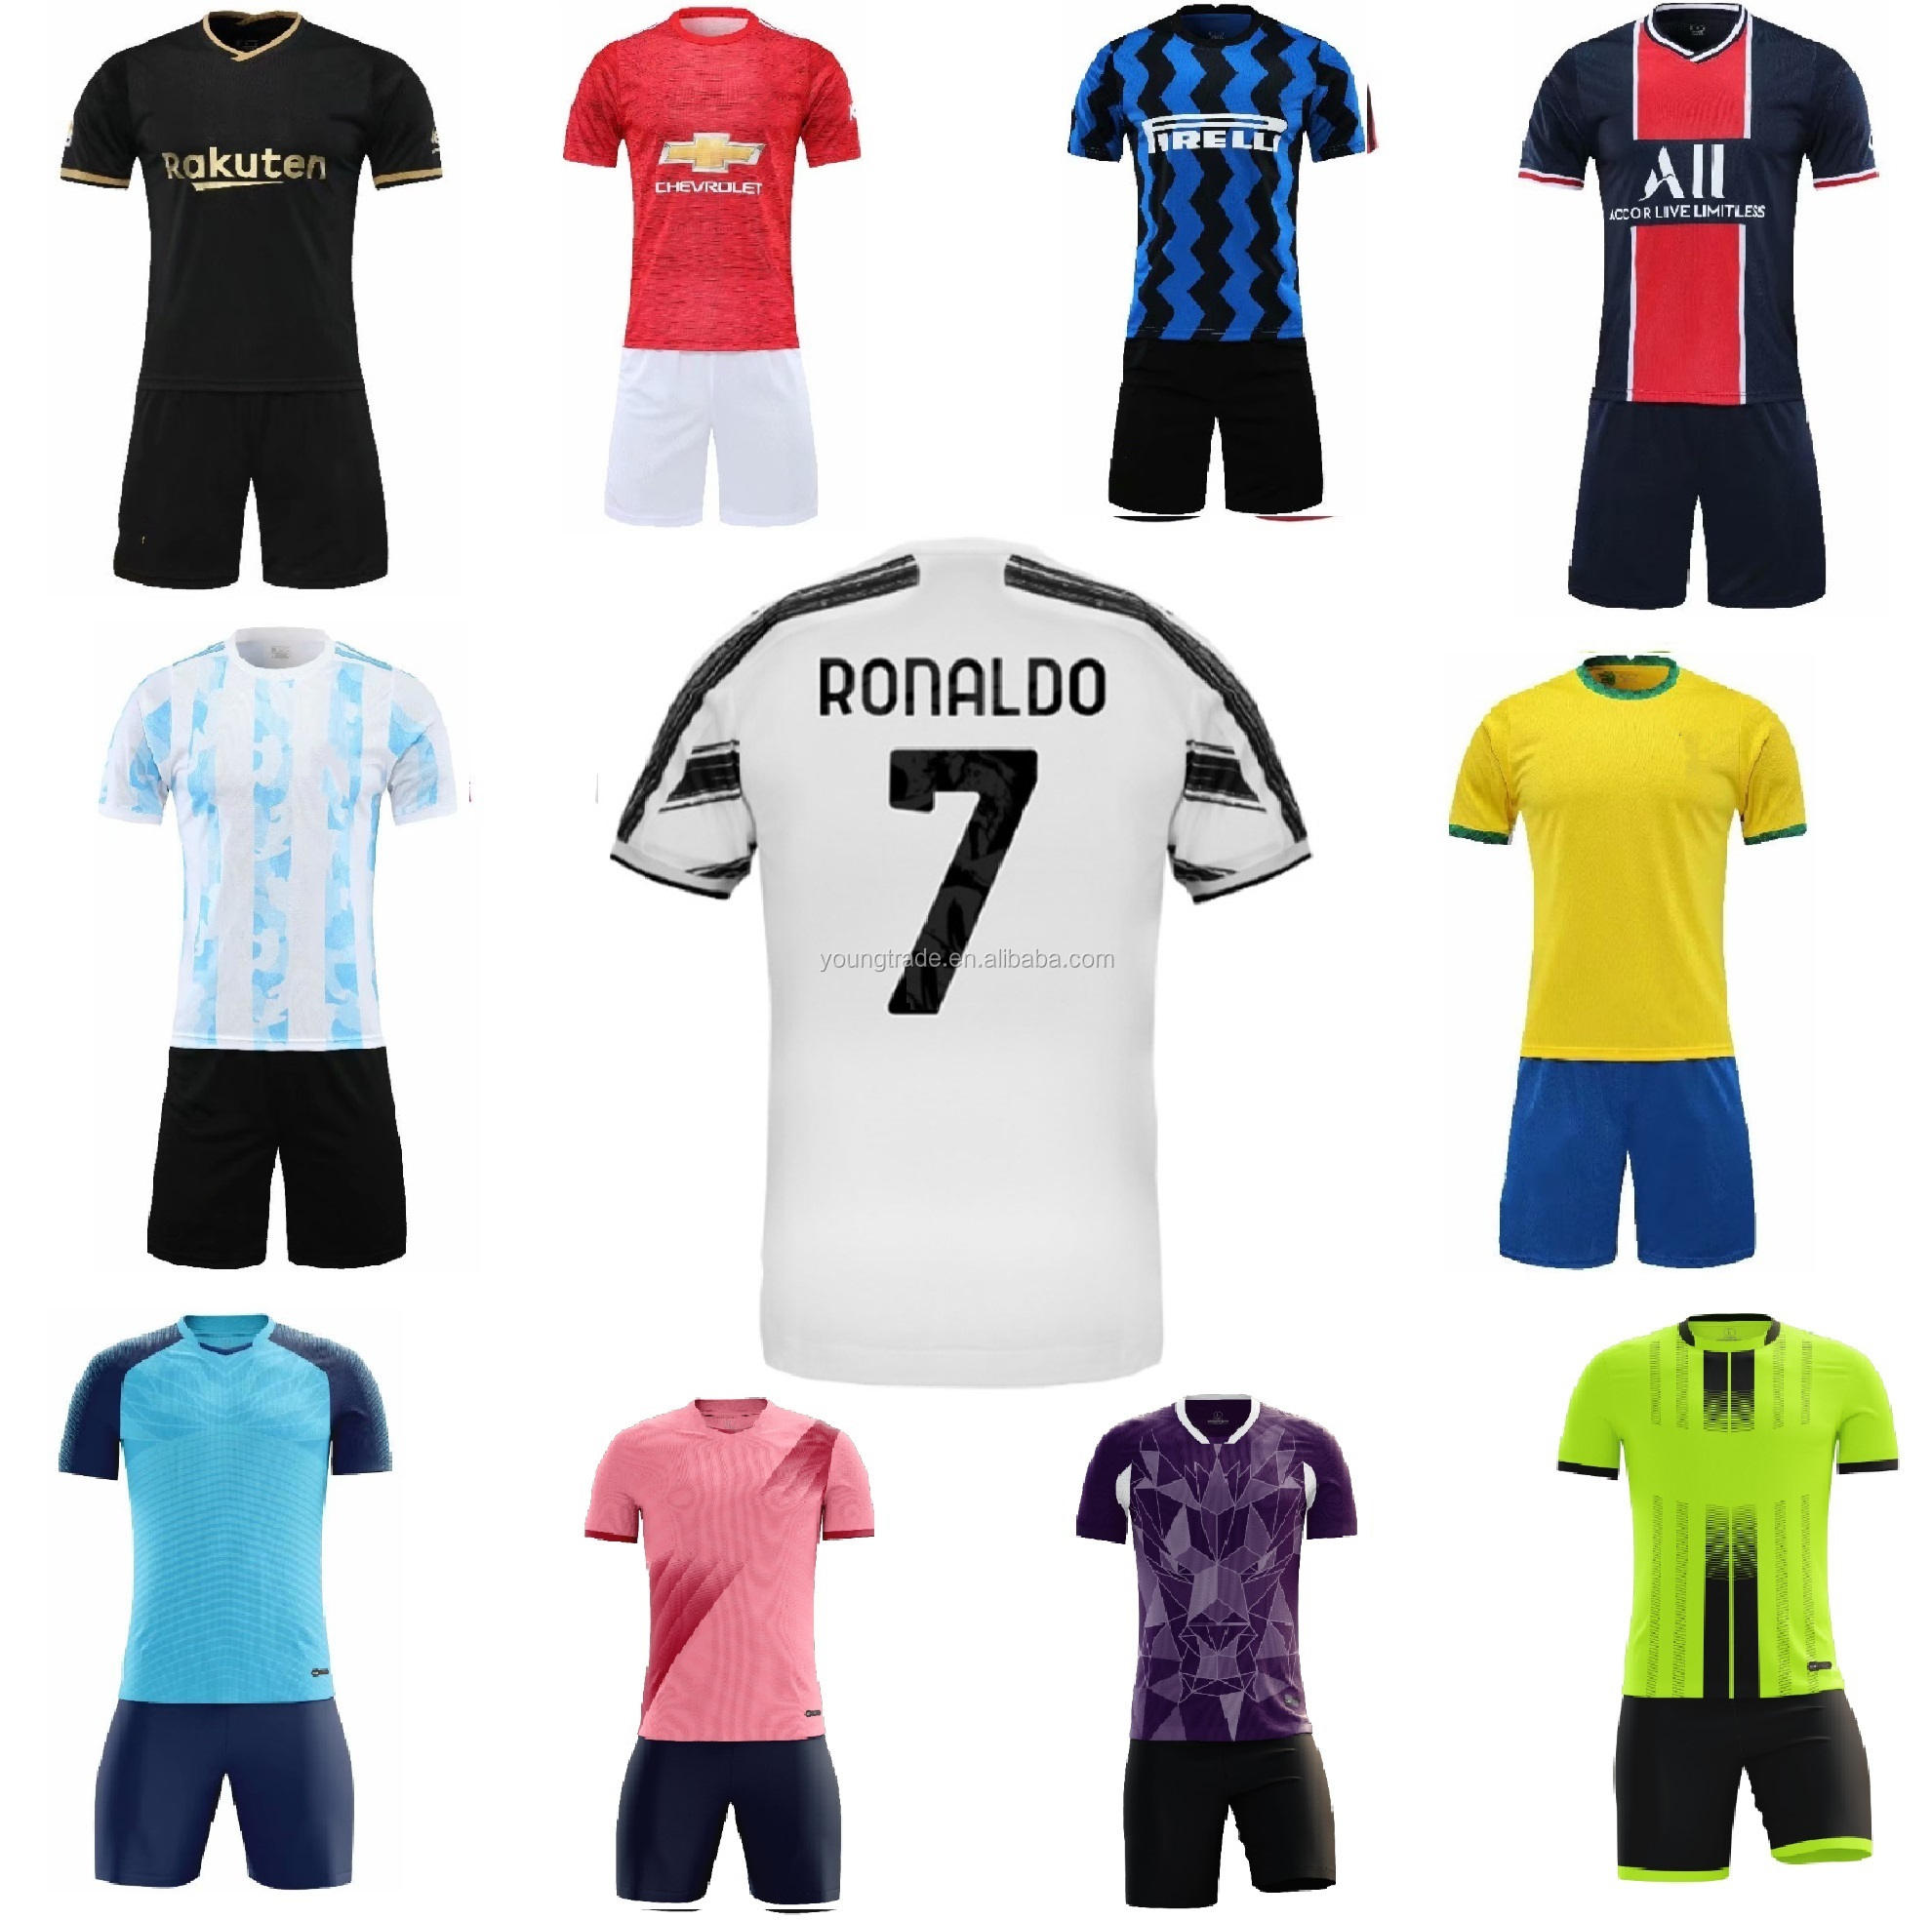 2020 2021 Custom Sublimation Football Jersey Soccer Jersey Soccer Wear View Football Jersey Oem Product Details From Guangzhou Brilliant Trading Co Ltd On Alibaba Com